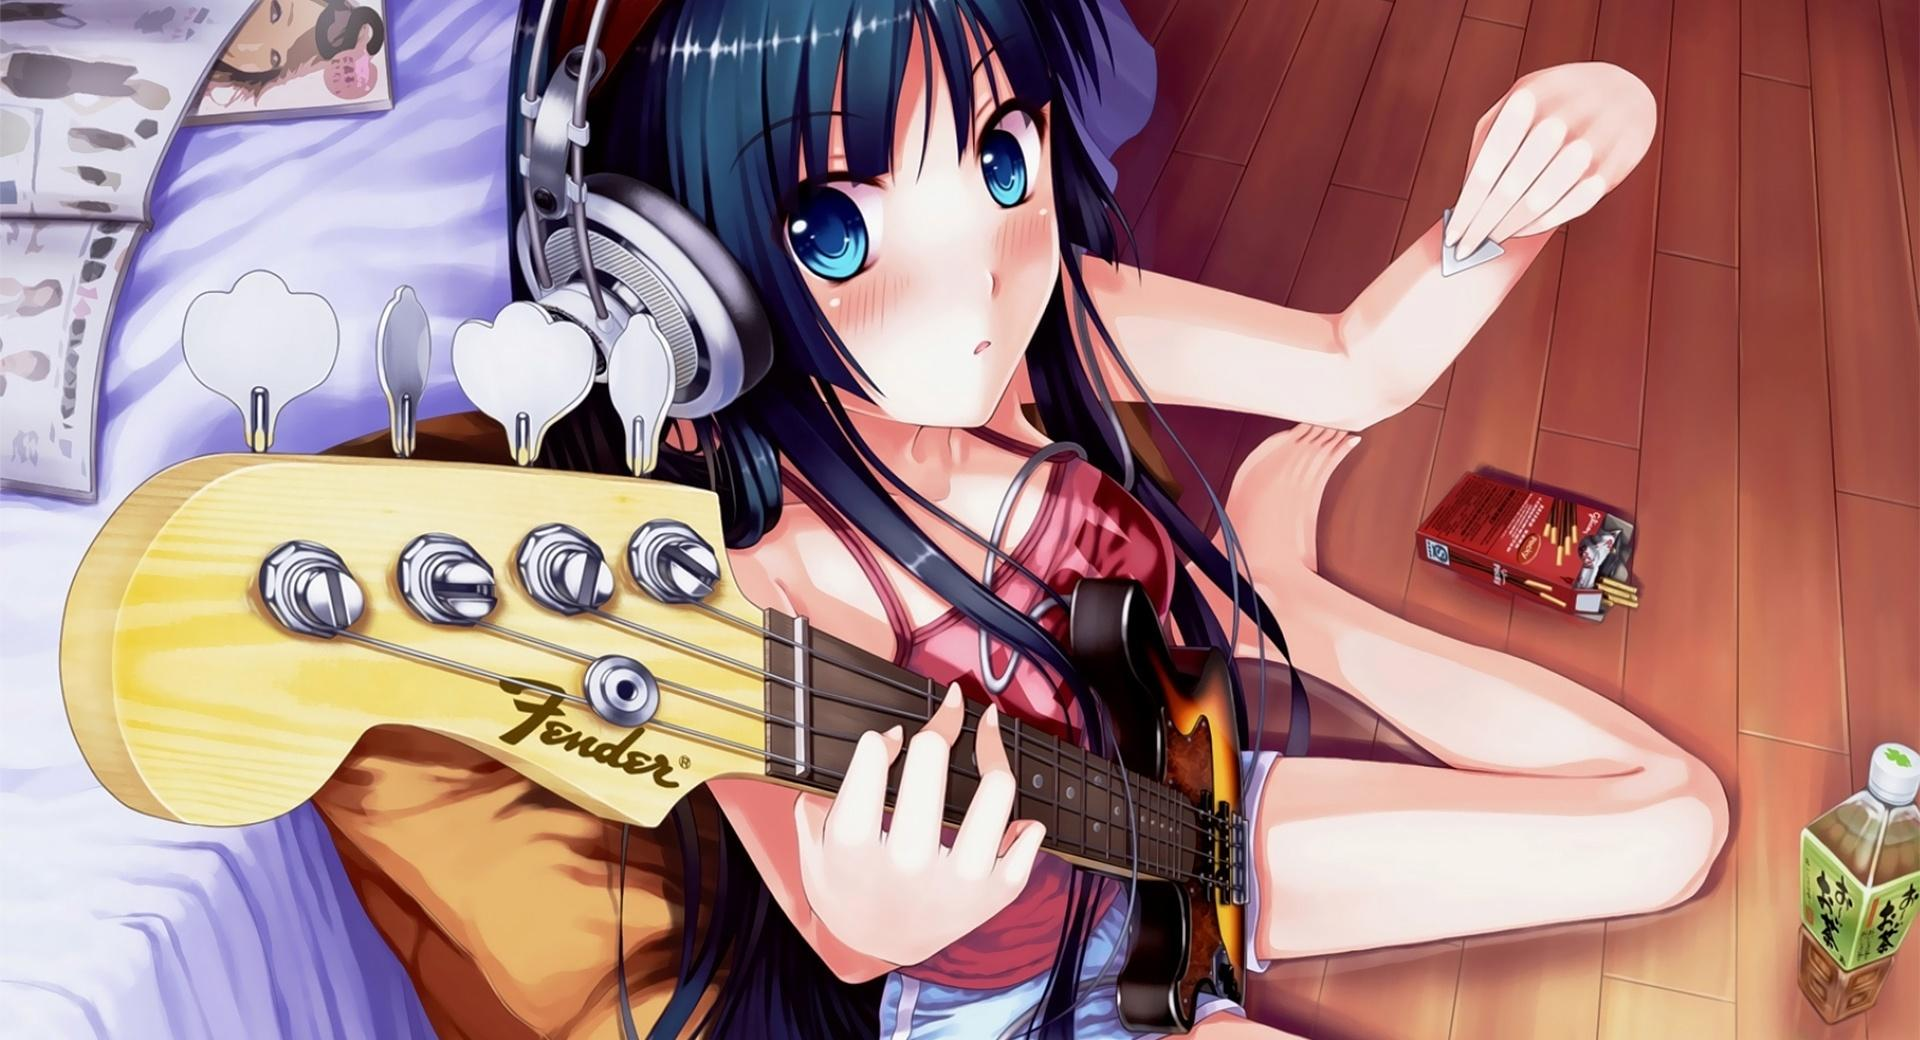 Anime The Girl With A Guitar wallpapers HD quality